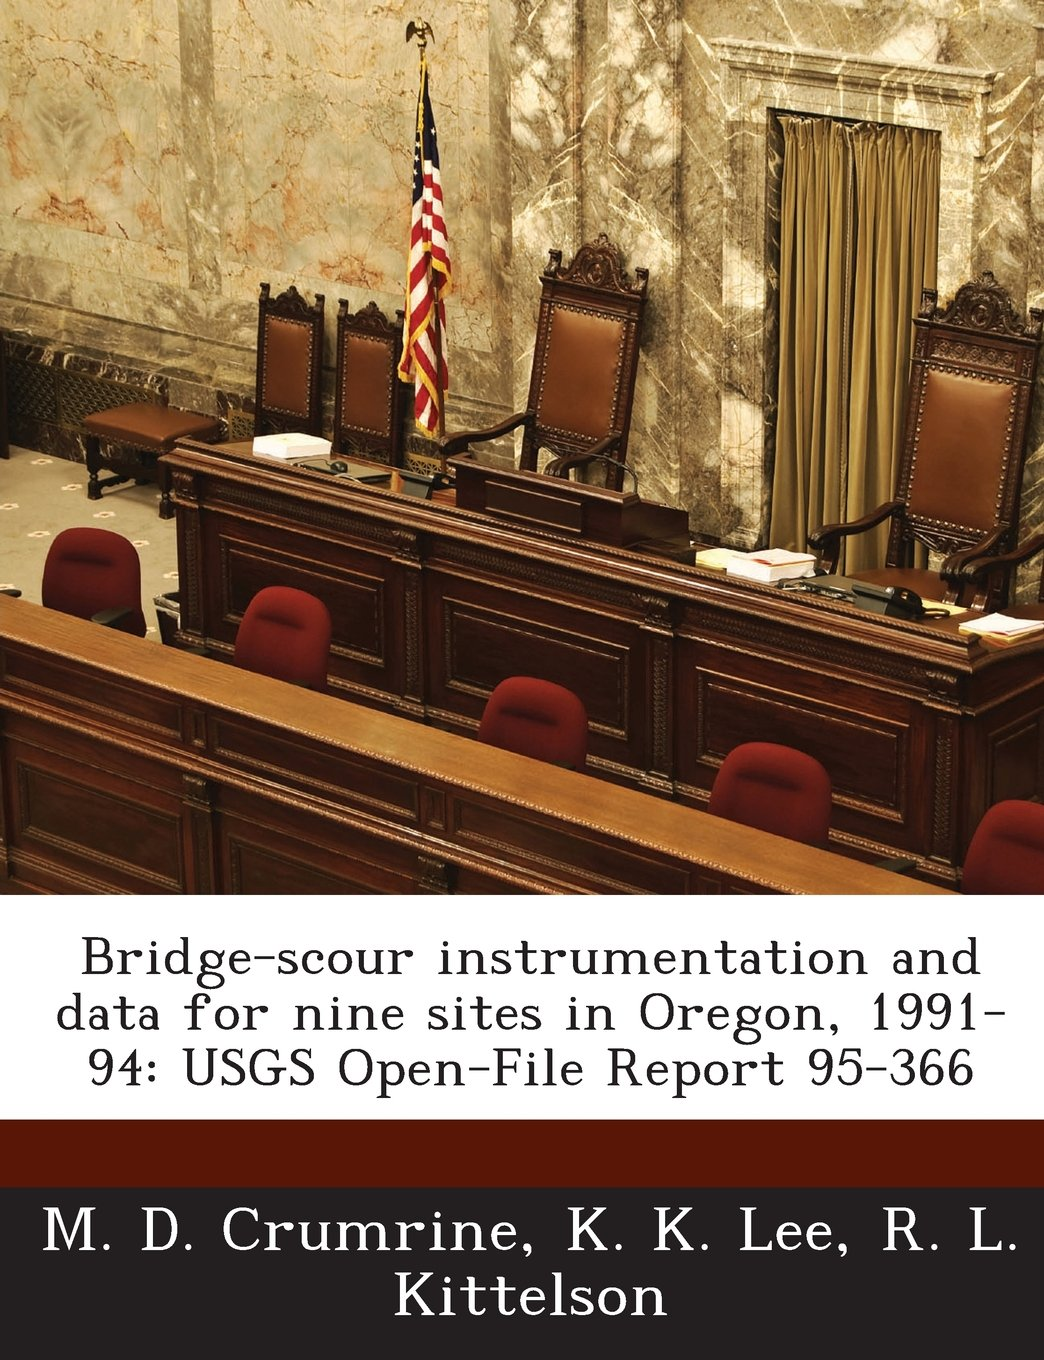 Bridge-scour instrumentation and data for nine sites in Oregon, 1991-94: USGS Open-File Report 95-366 M. D. Crumrine, K. K. Lee and R. L. Kittelson